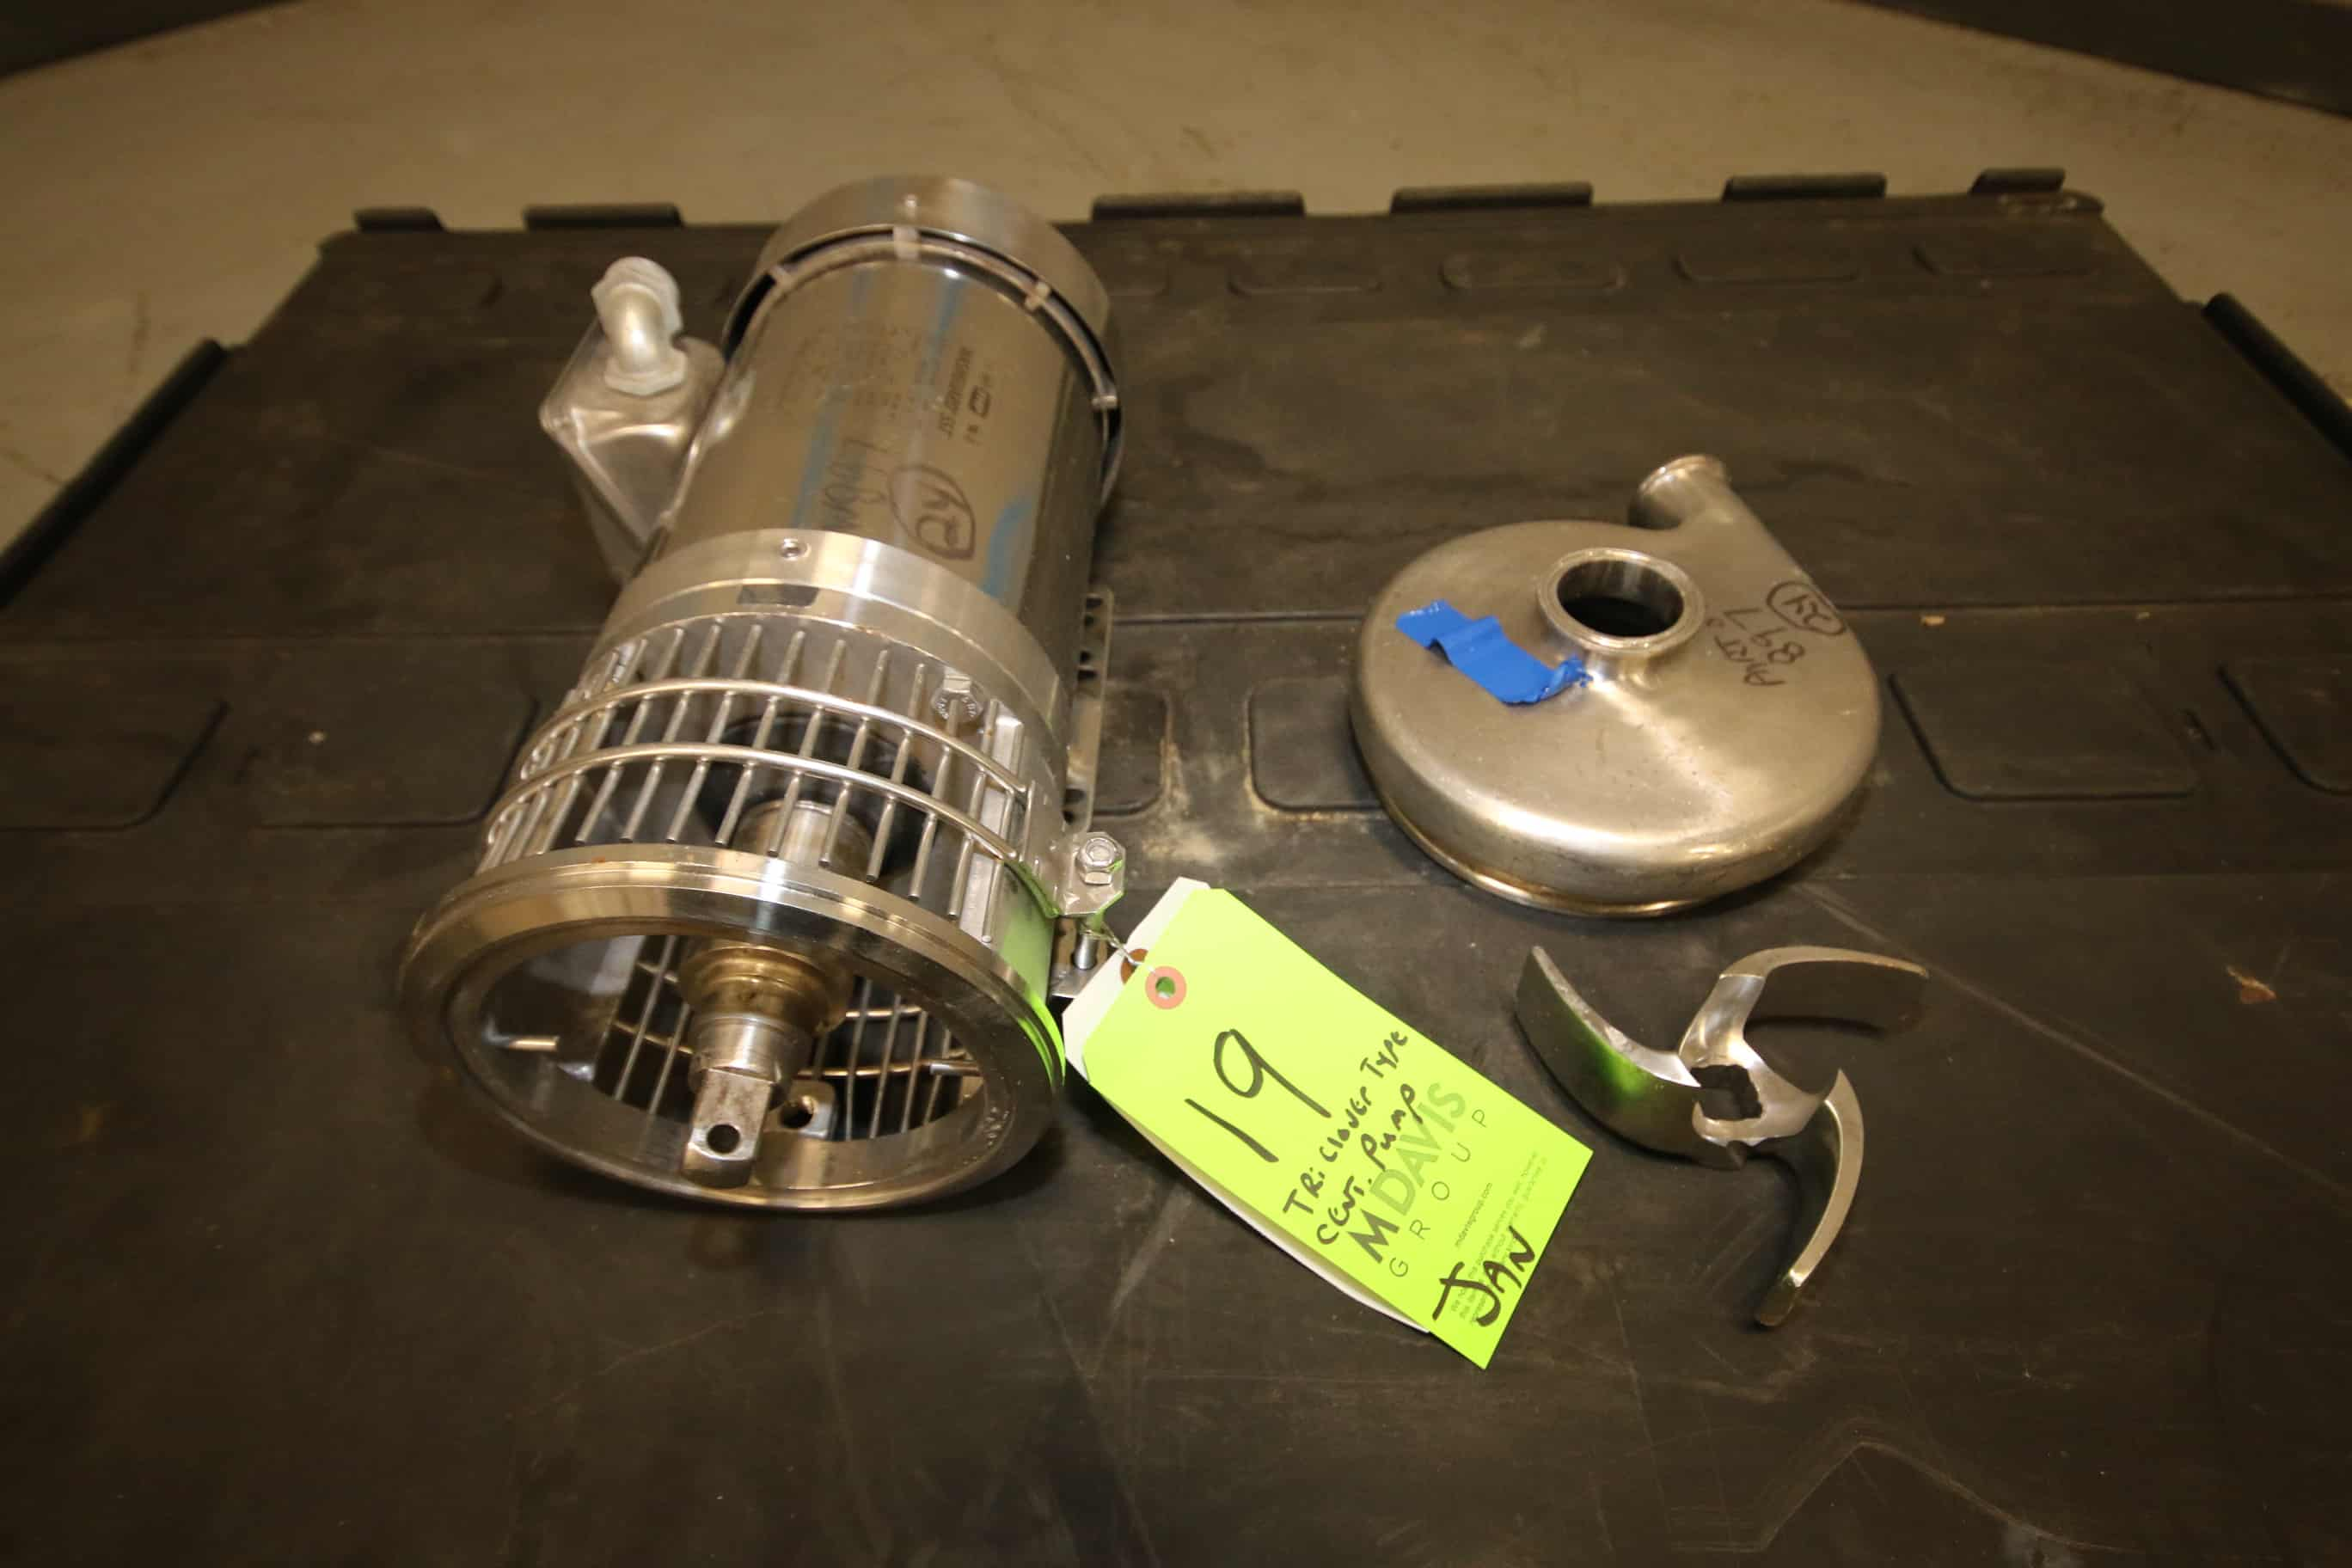 """Tri Clover Type S/S Centrifugal Pump with 2"""" x 1.5"""" CT S/S Head, FHP 2/1.5 hp 1740/1440 RPM S/S Clad Motor, 208-230 / 460V 3 Phase, (Note: Missing Back Plate, Clamp & Seal Kit, (W897)"""